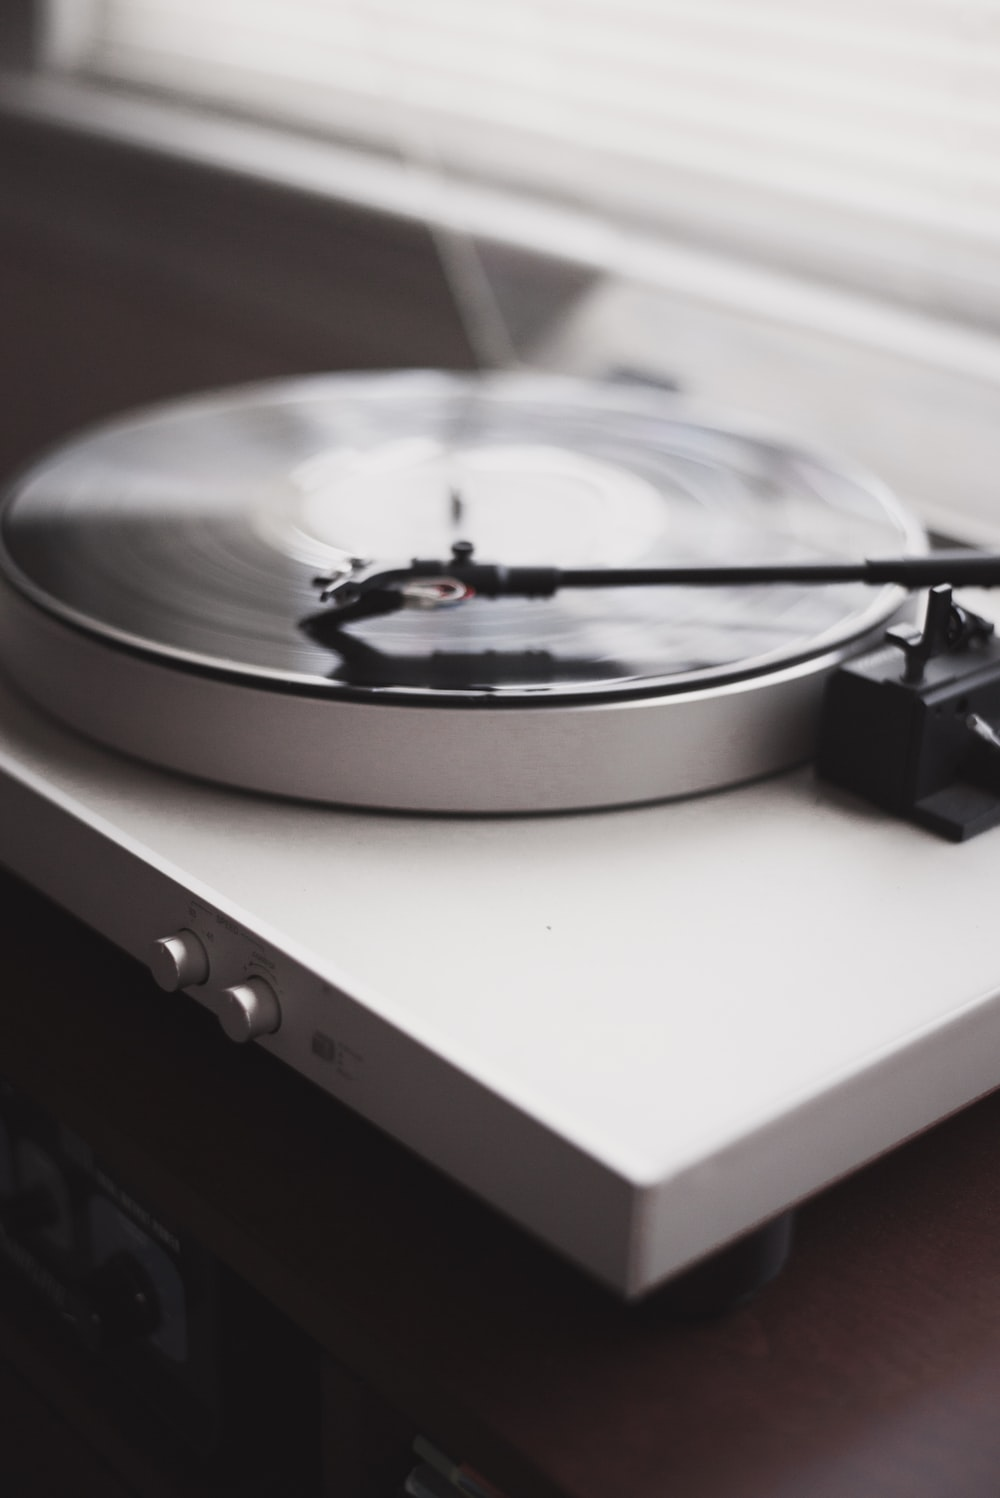 A blurry shot of a white record player playing a vinyl